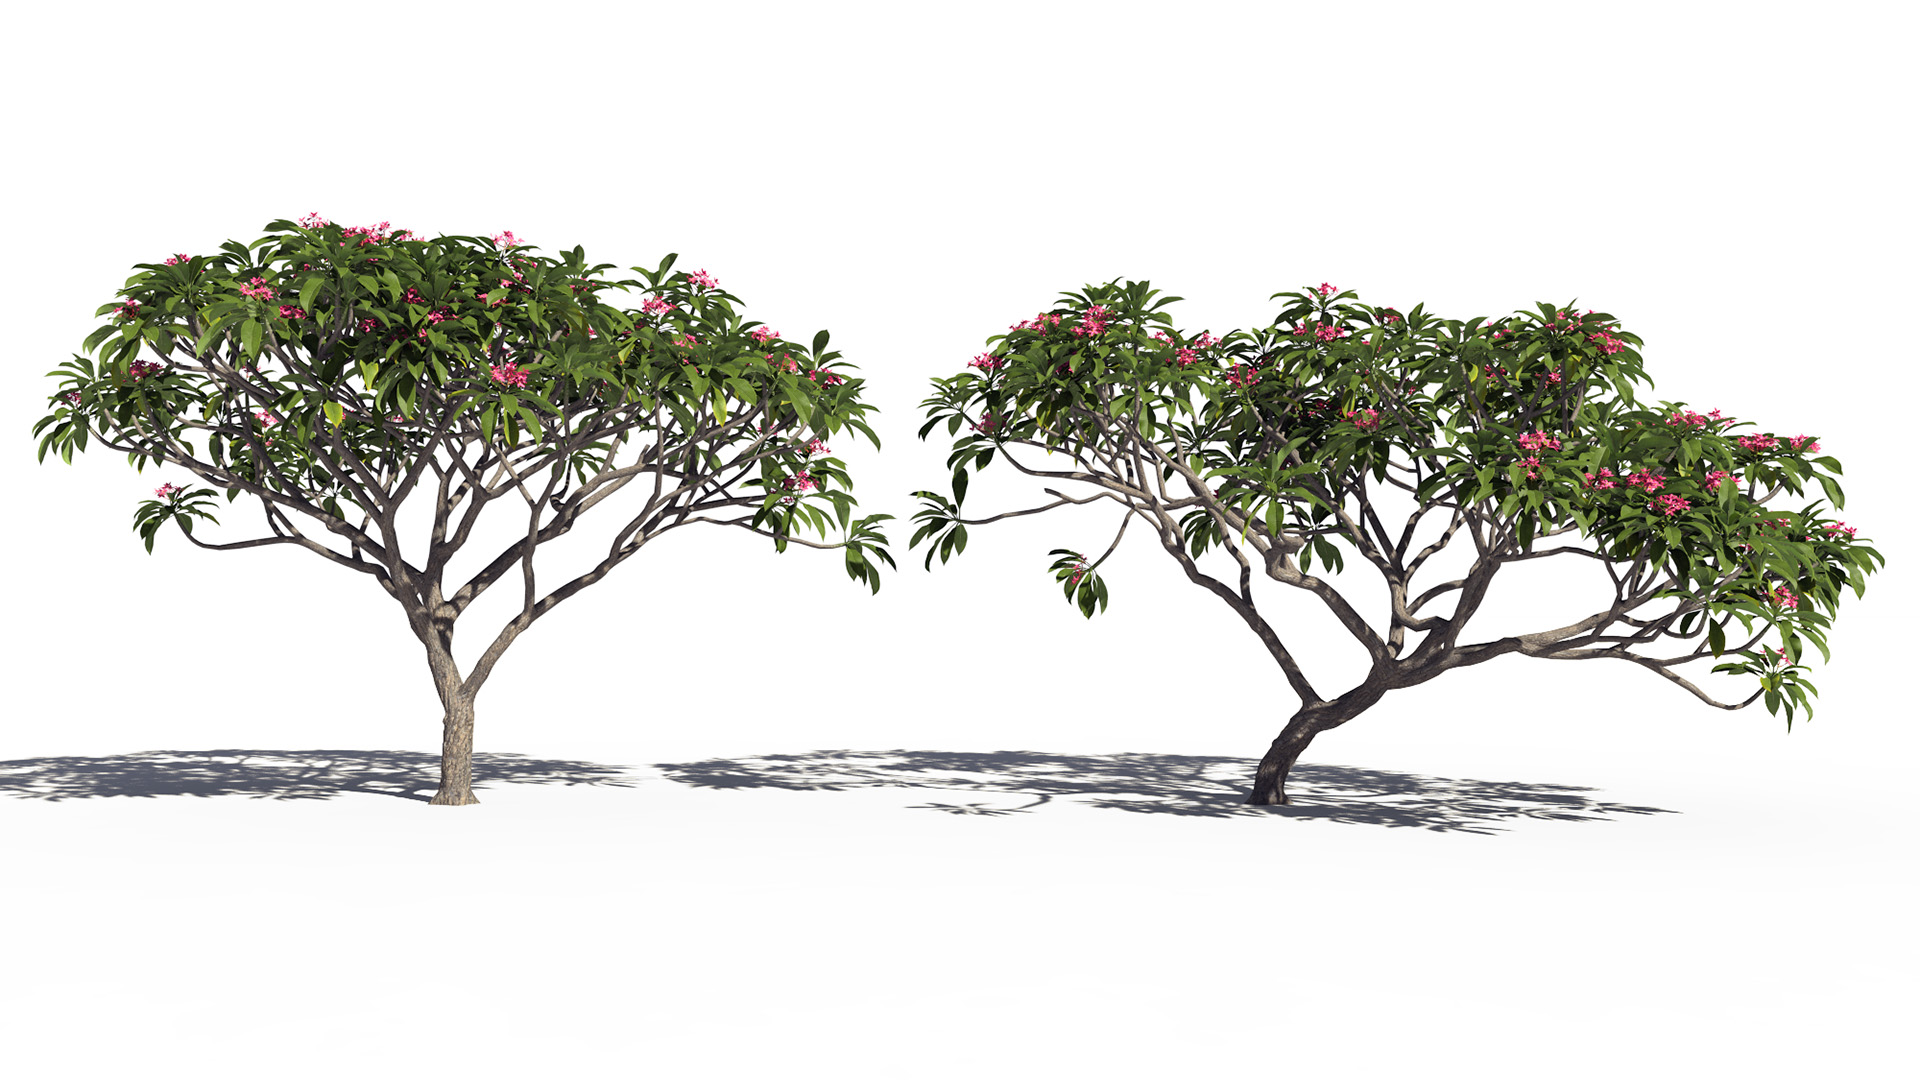 3D model of the Frangipani tree Plumeria rubra pink